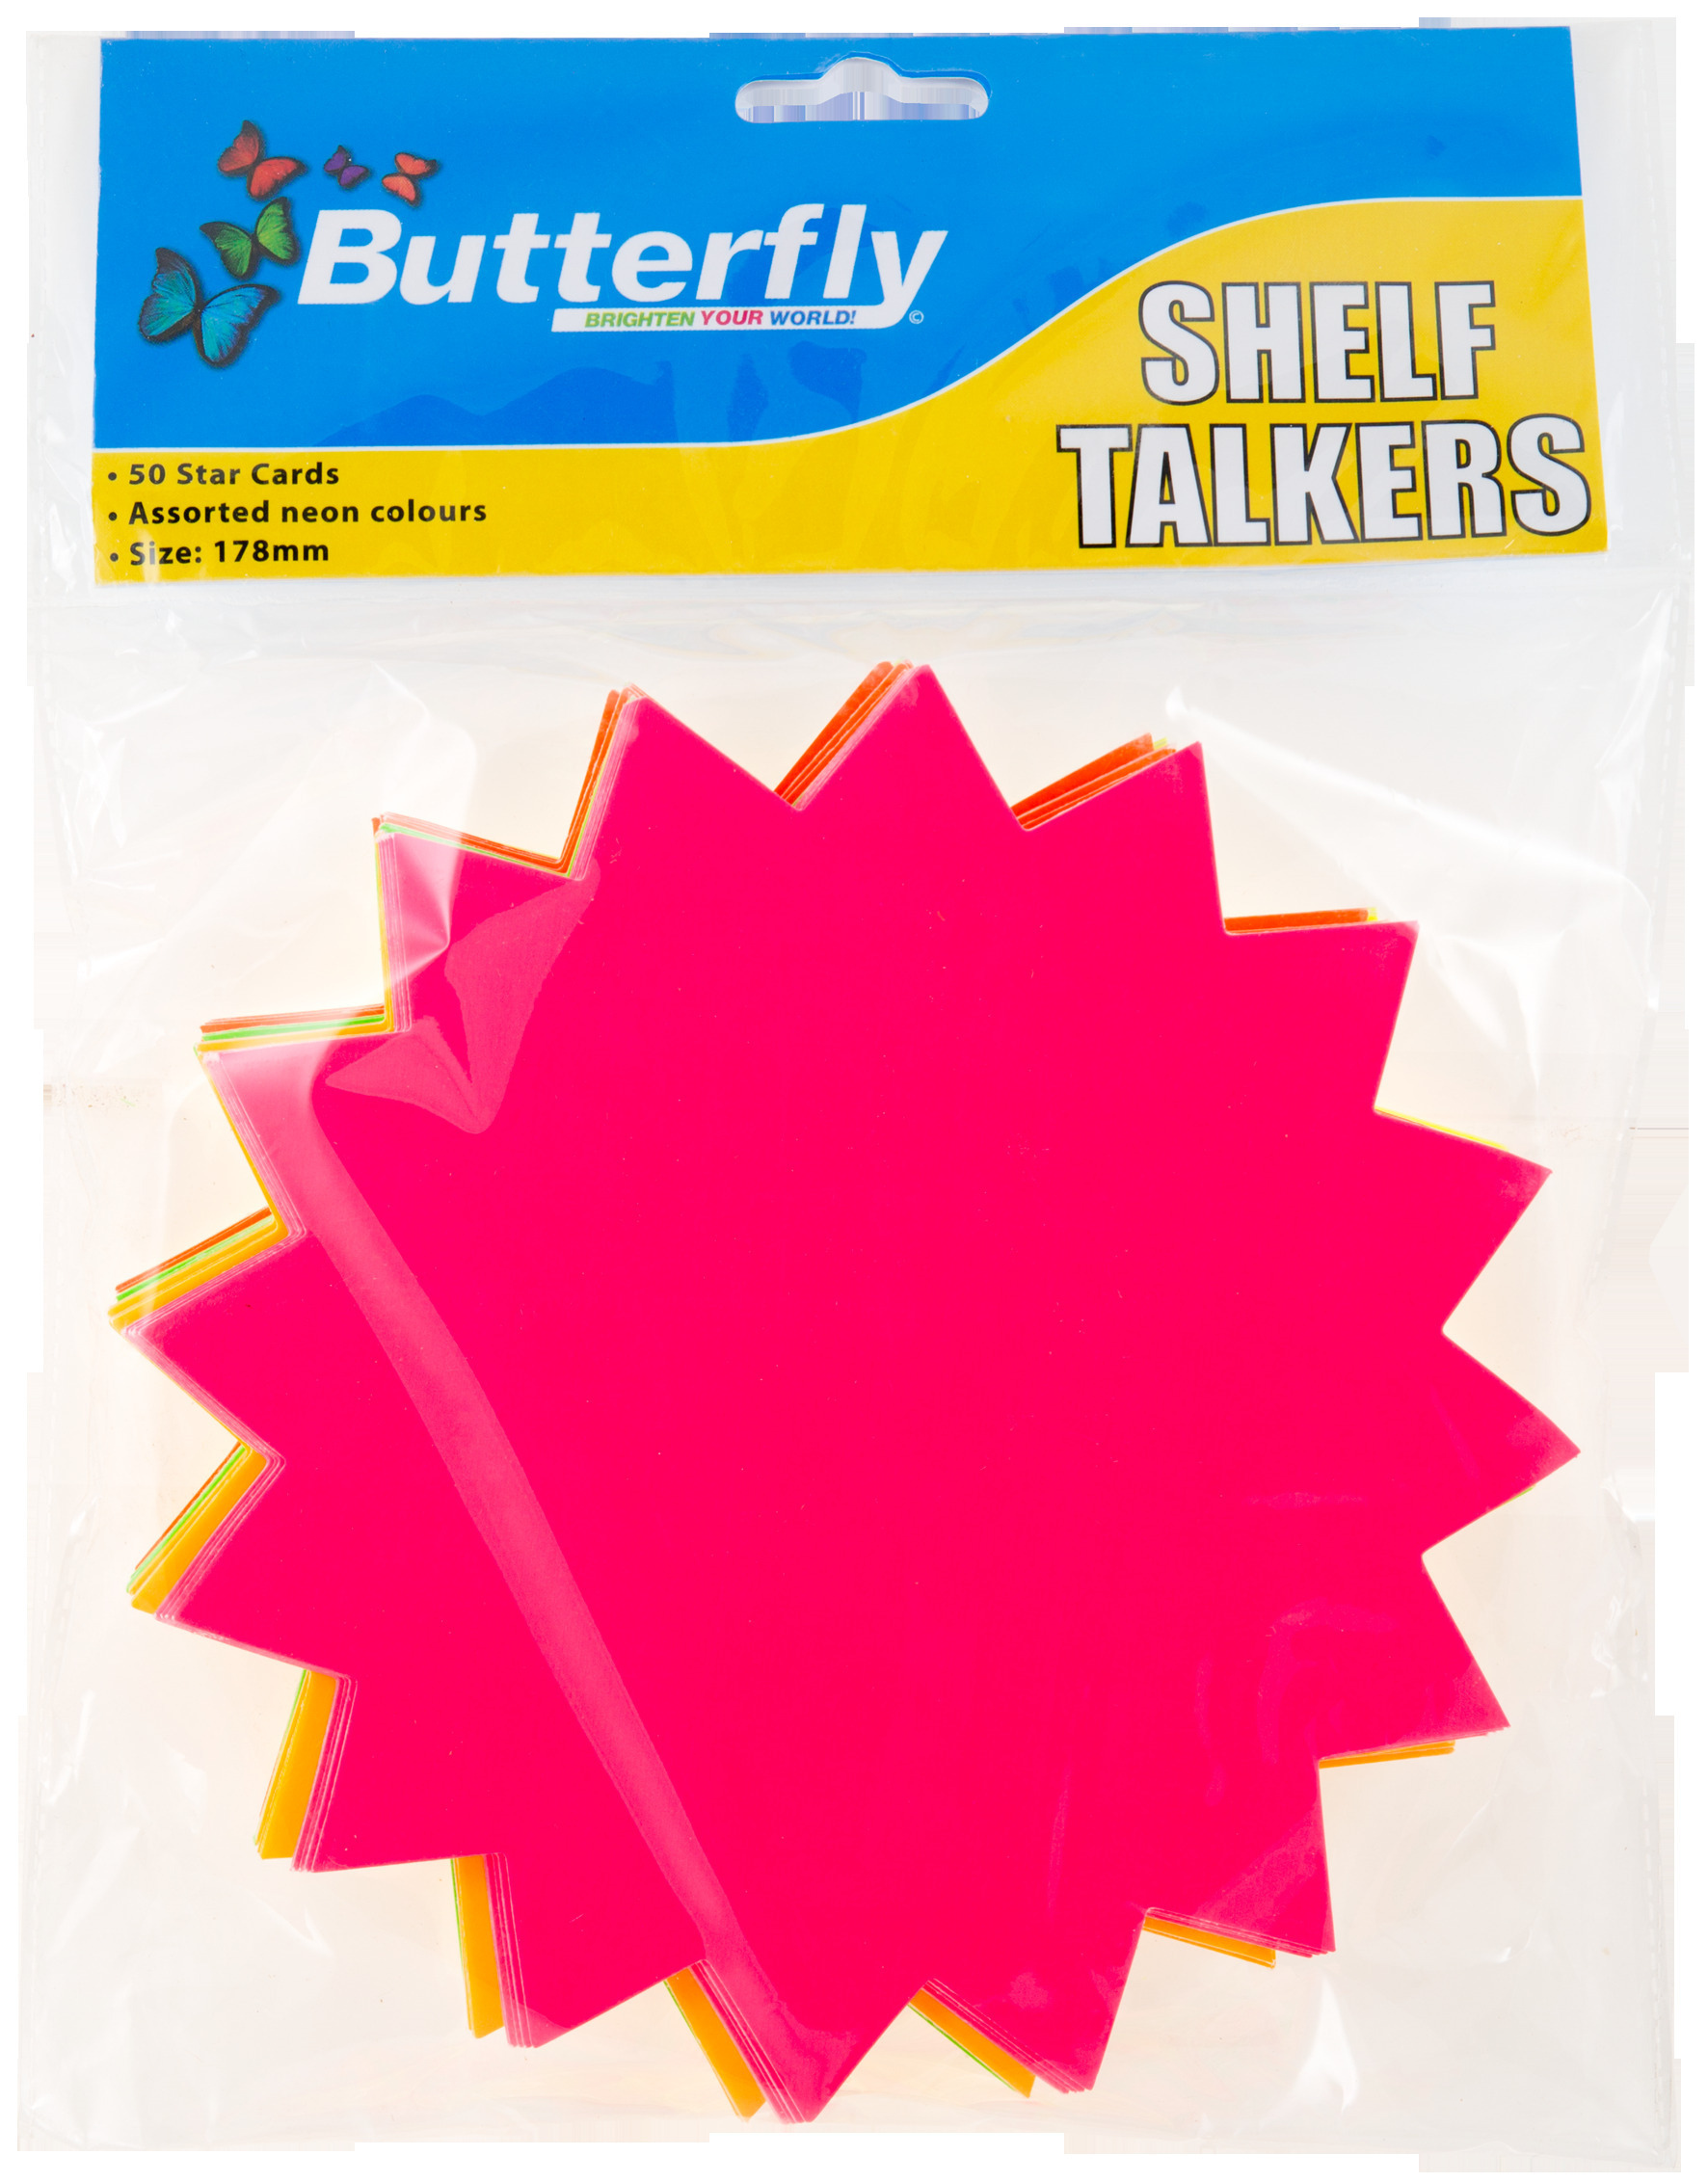 Shelf Talkers - Cut Out Card Stars 50 (178mm)